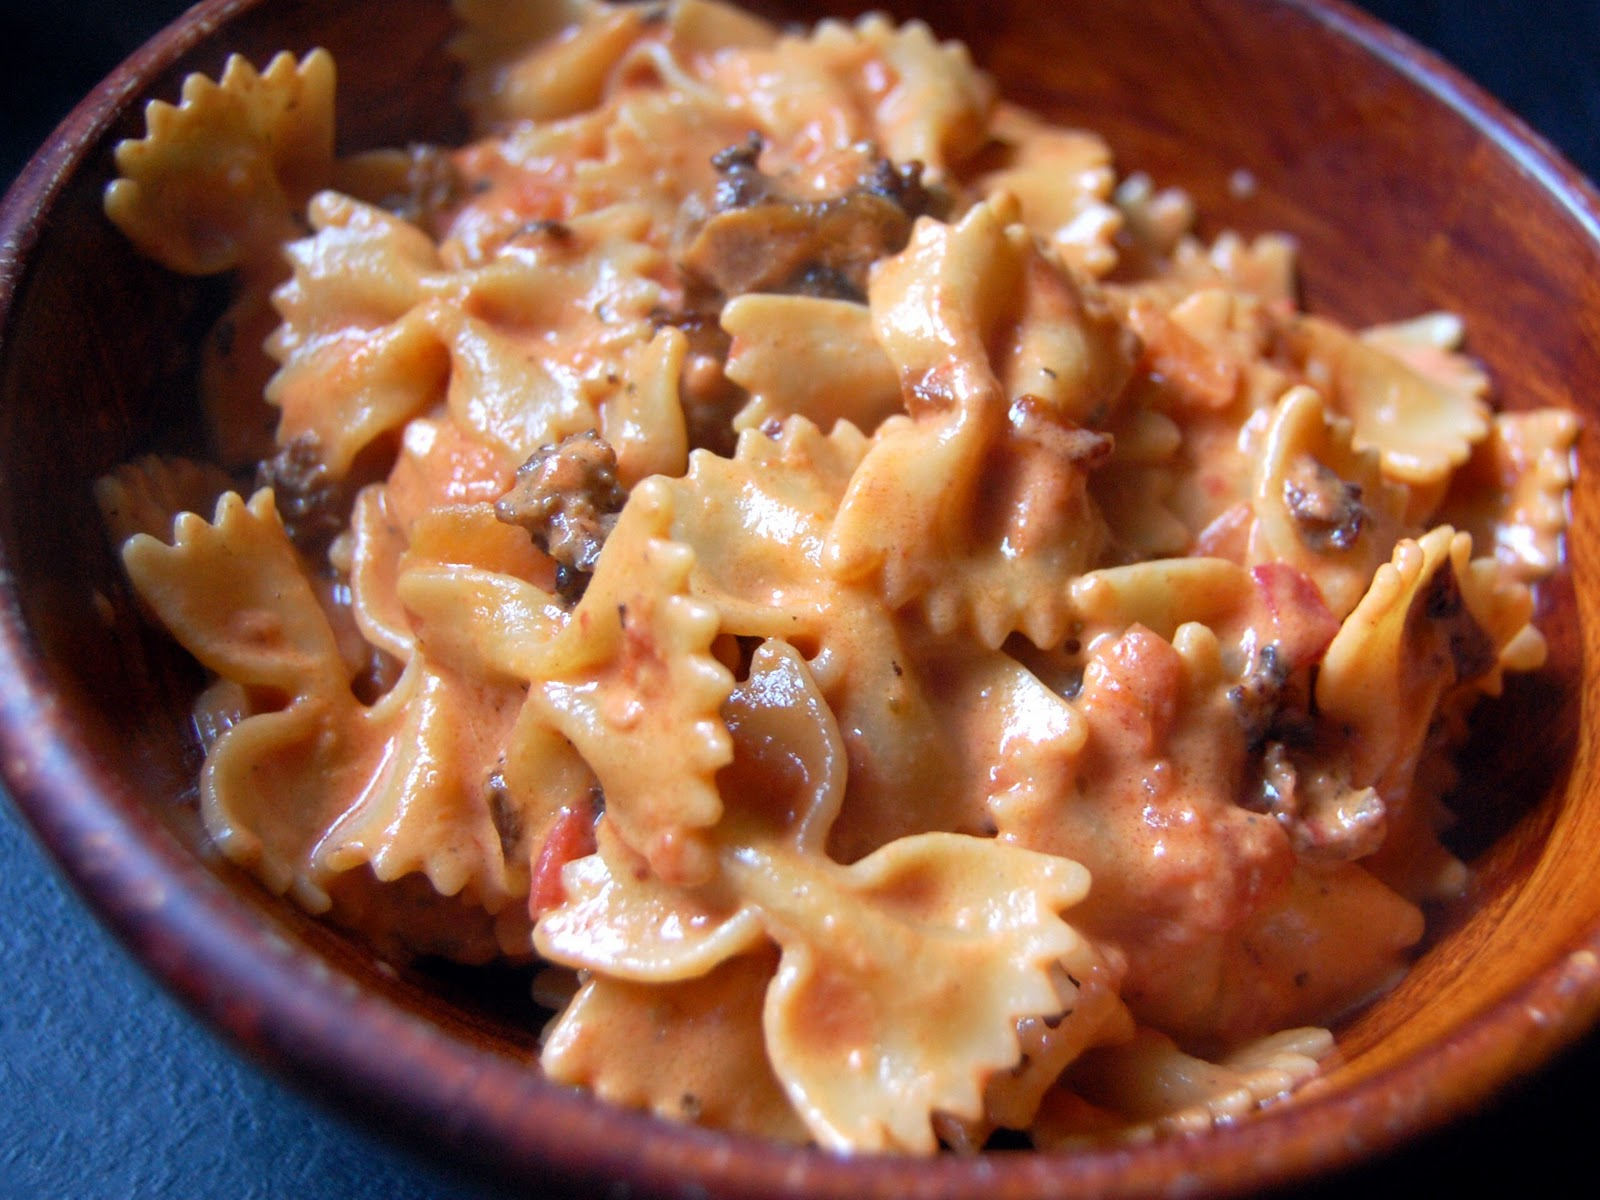 Cassie Craves: Bow Ties with Spicy Sausage in Tomato Cream Sauce